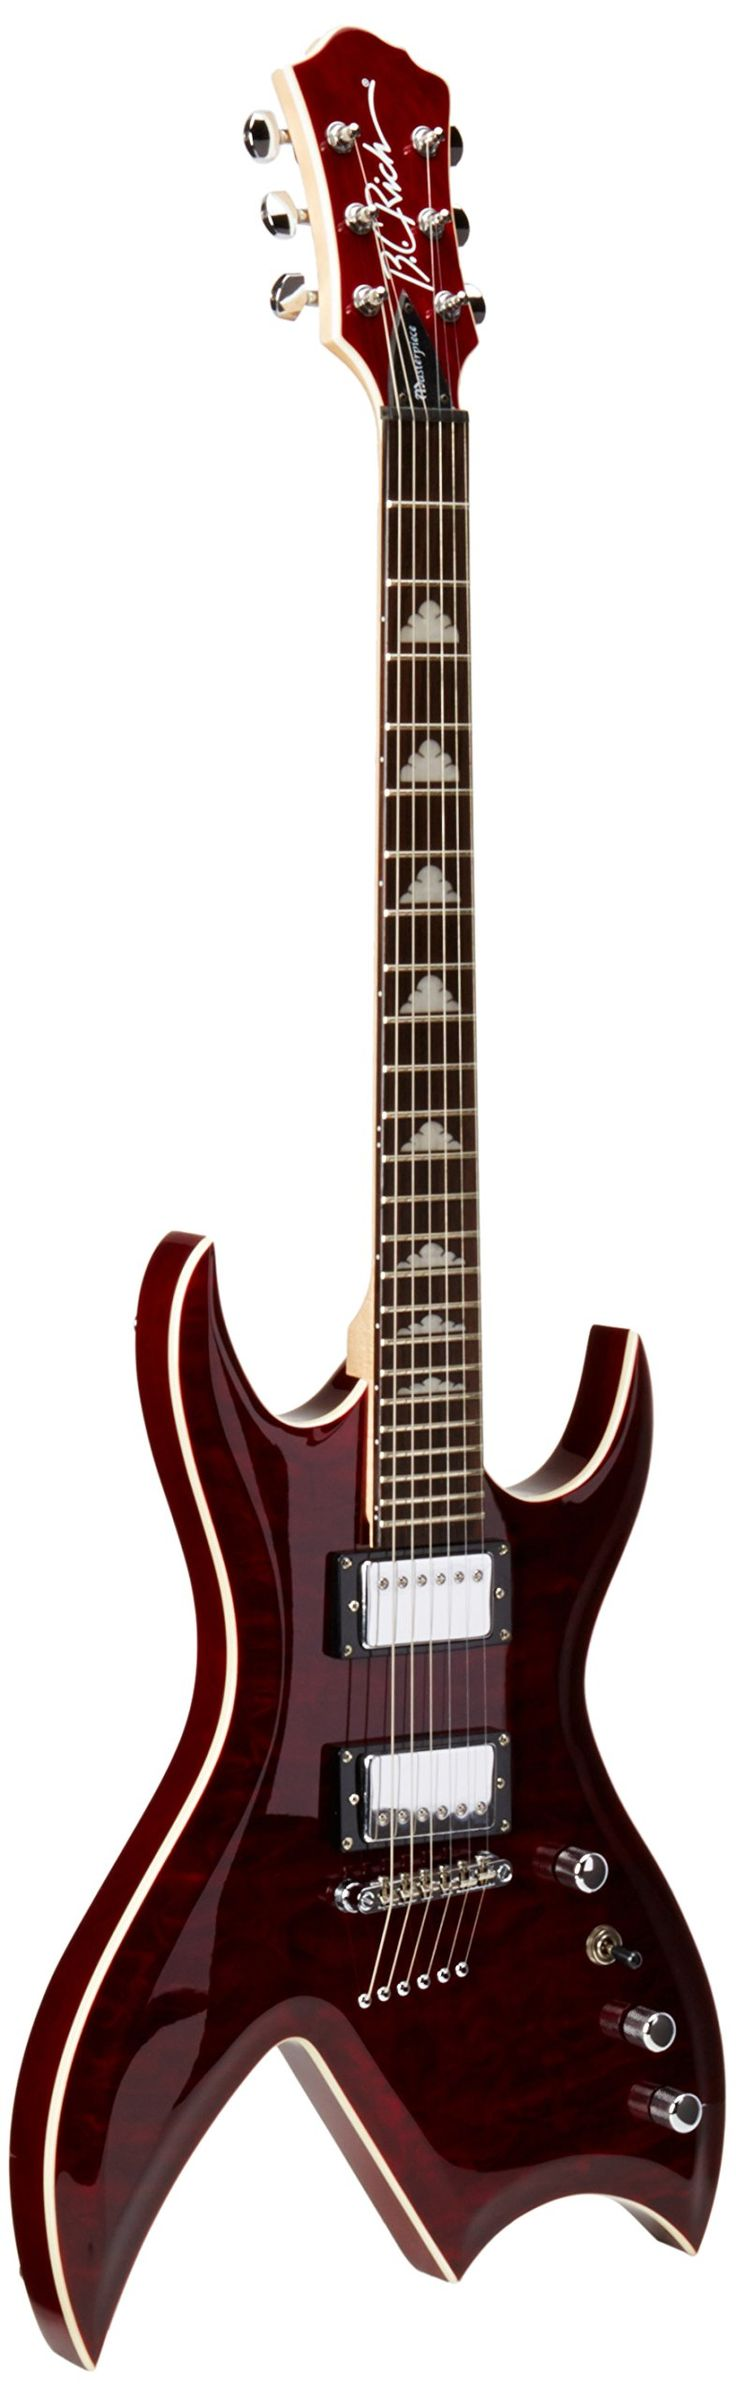 B.C. Rich Masterpiece Bich Electric Guitar Dragon'S Blood. Agathis Body Bolt-on Construction Rosewood Fingerboard Classic BCR Headstock.